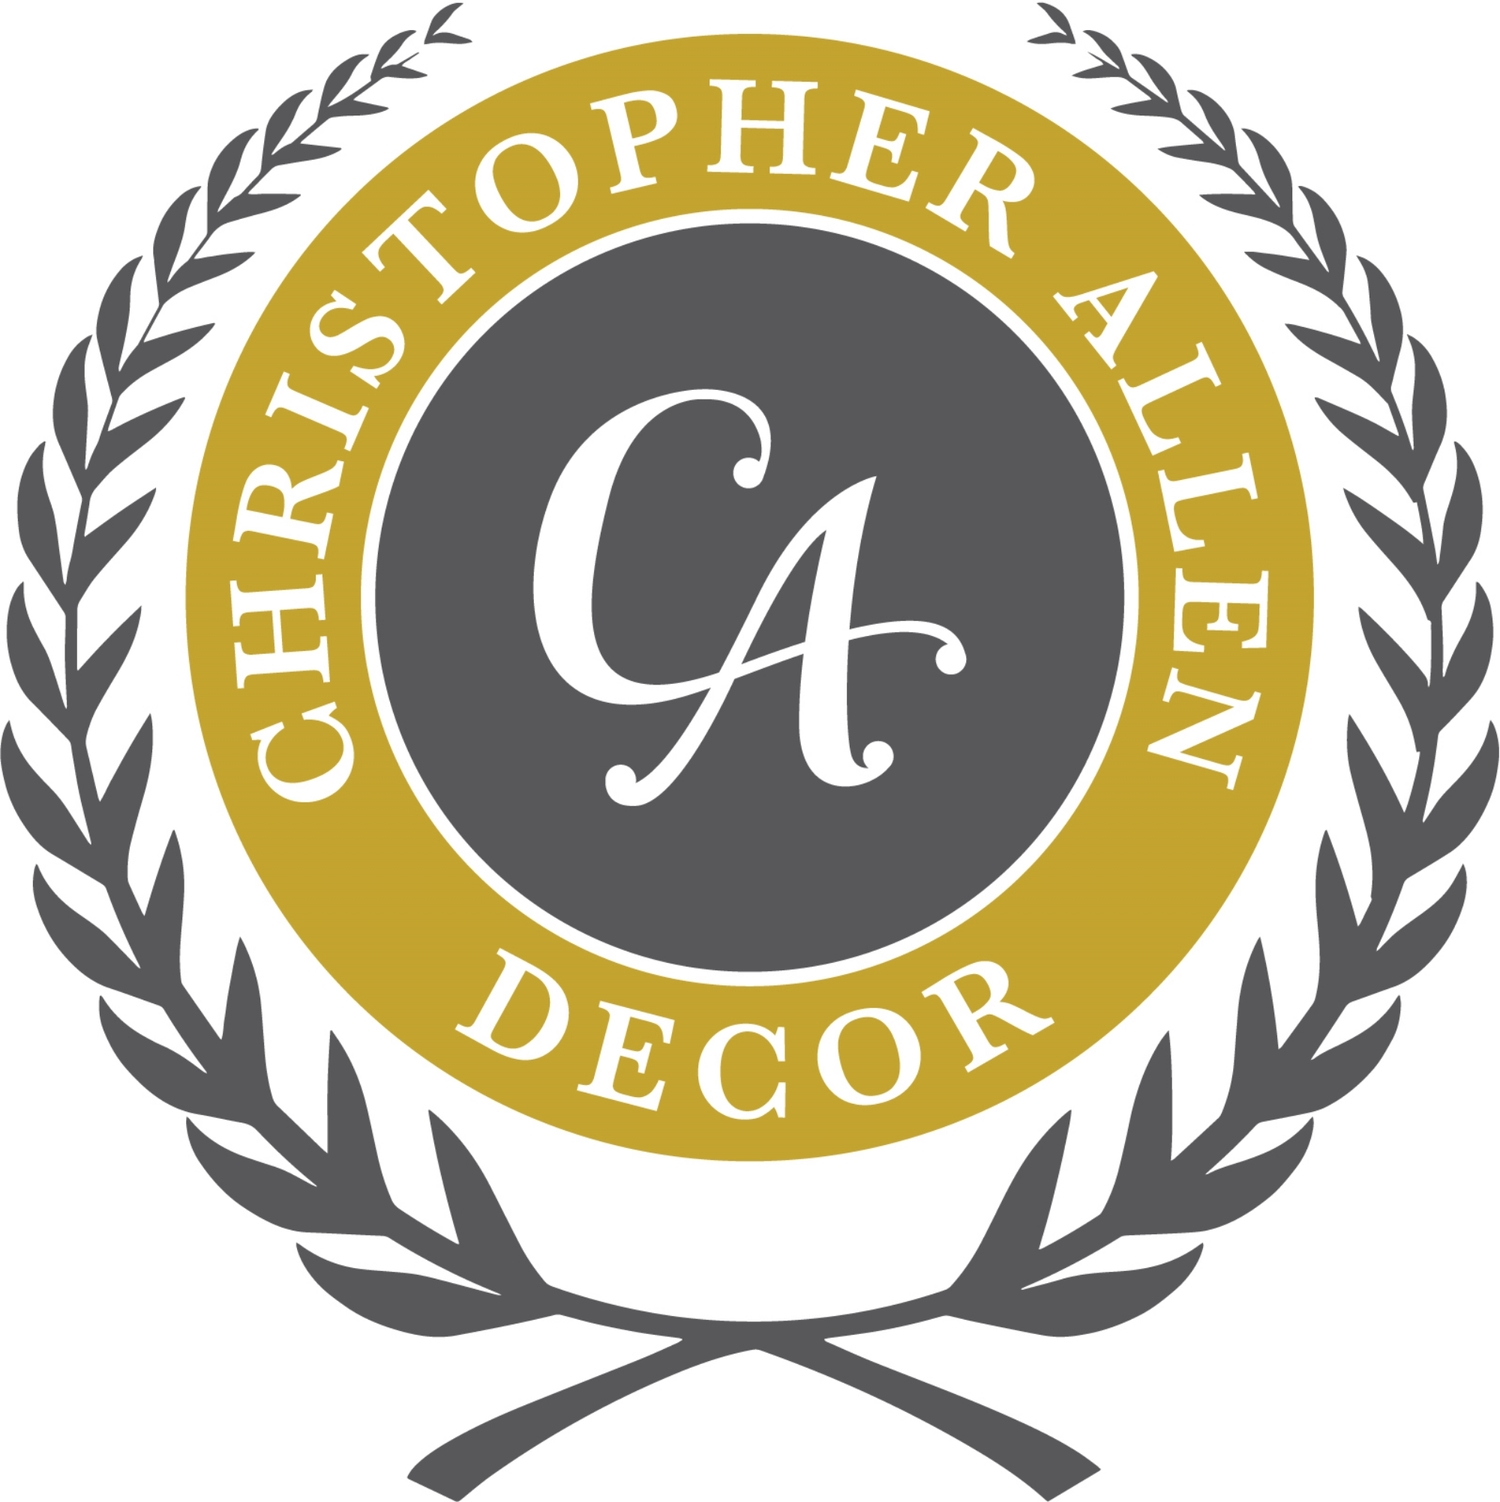 Christopher Allen Decor